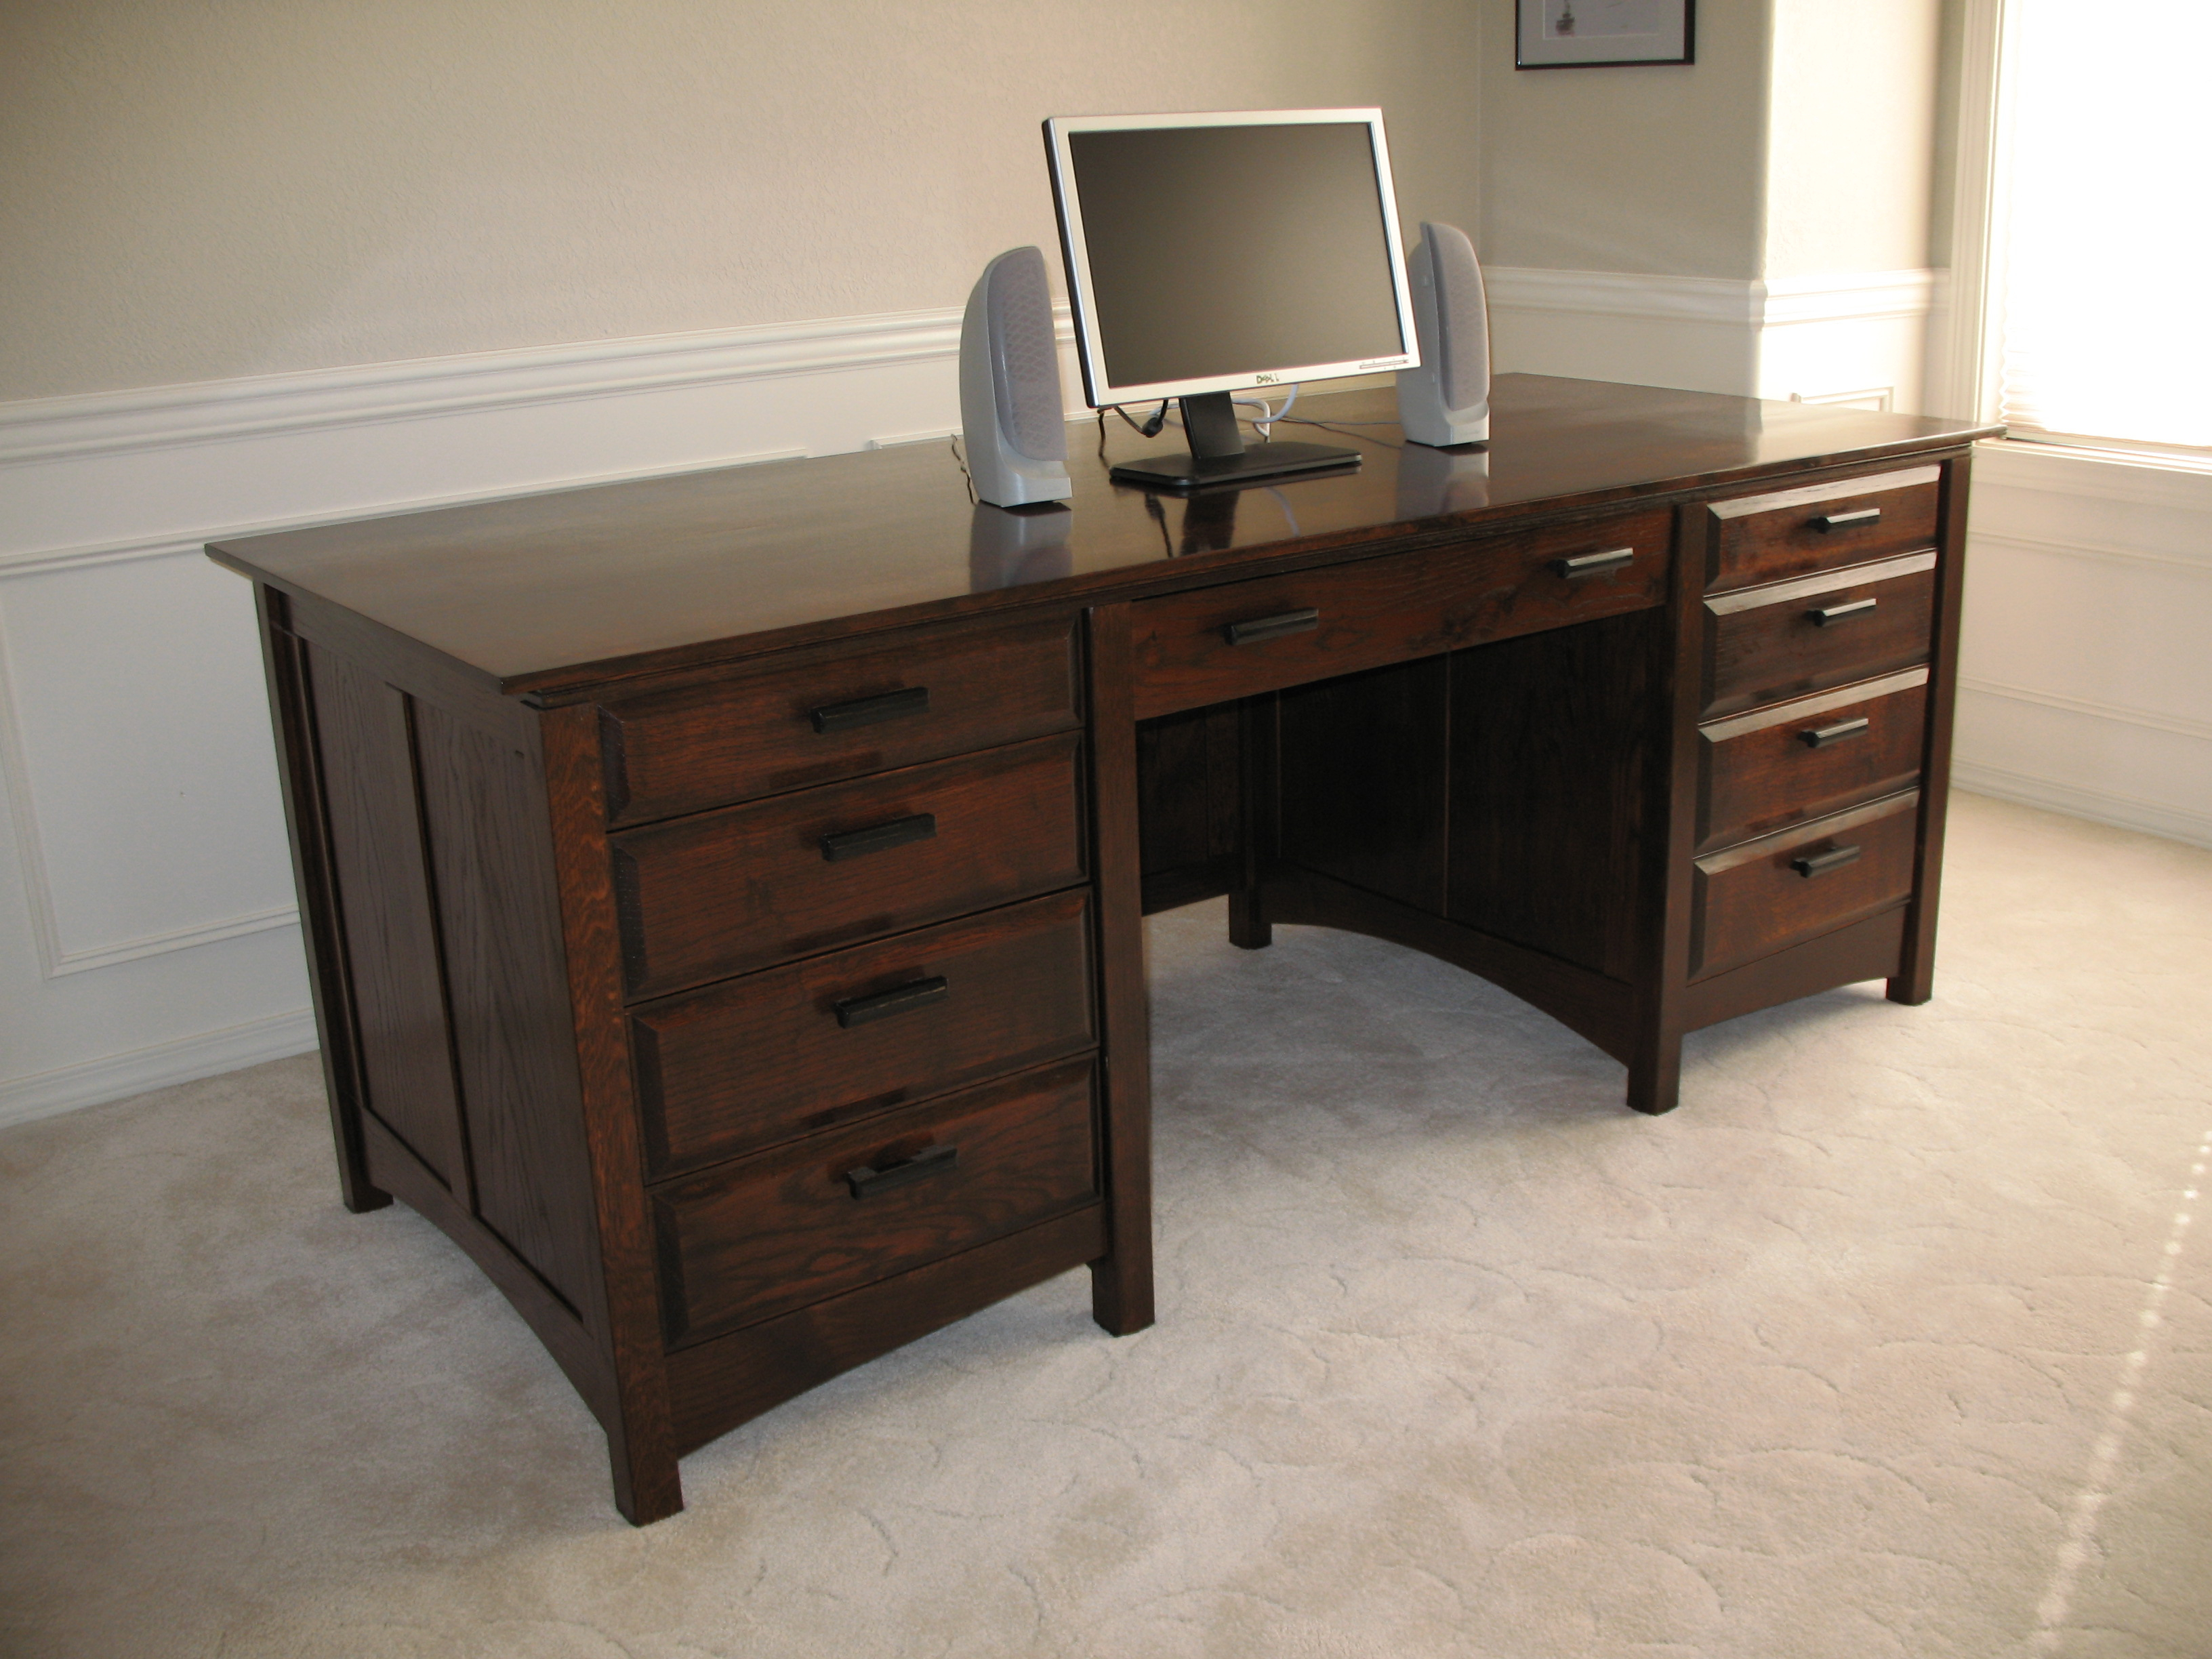 nick van  northwest corner woodworkers association - oak desk